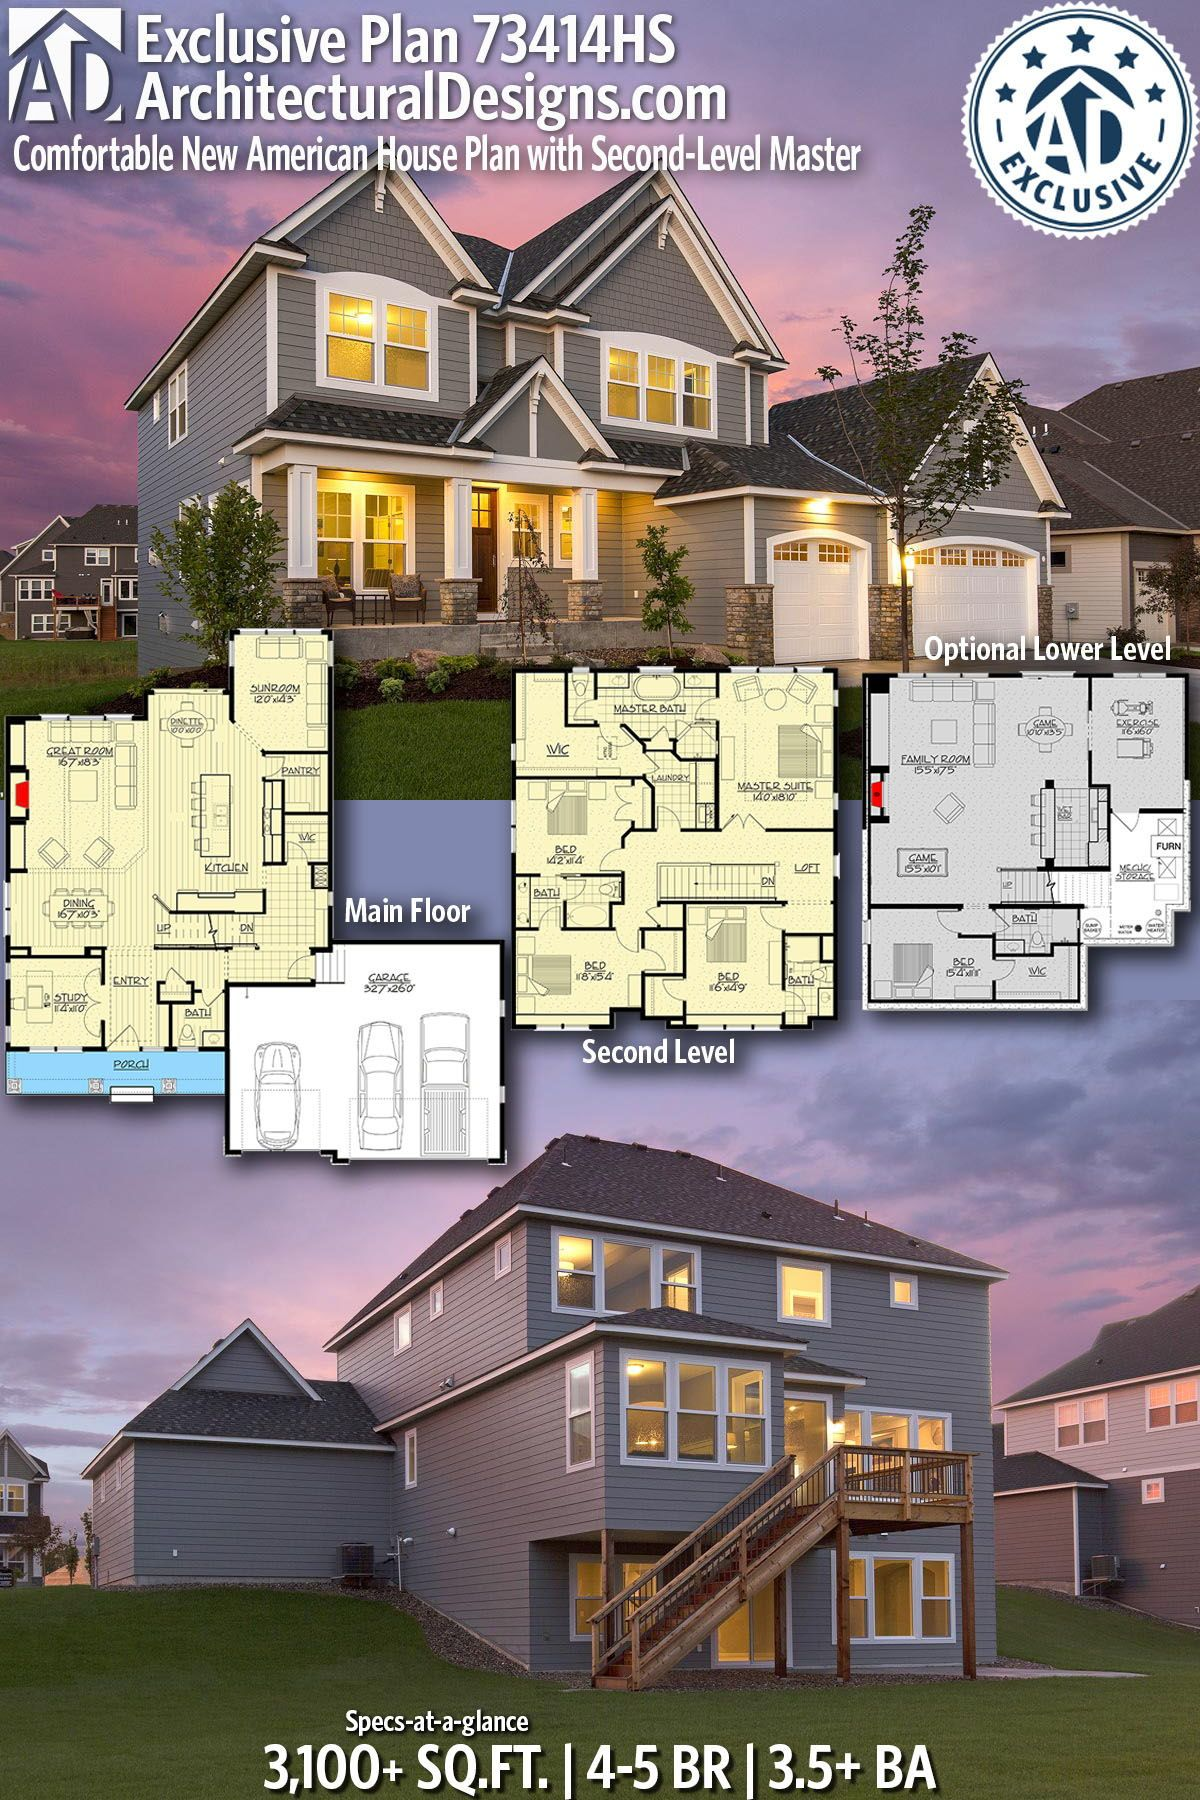 Plan 73414hs Comfortable New American House Plan With Second Level Master In 2021 American Houses House Plans Dream House Exterior